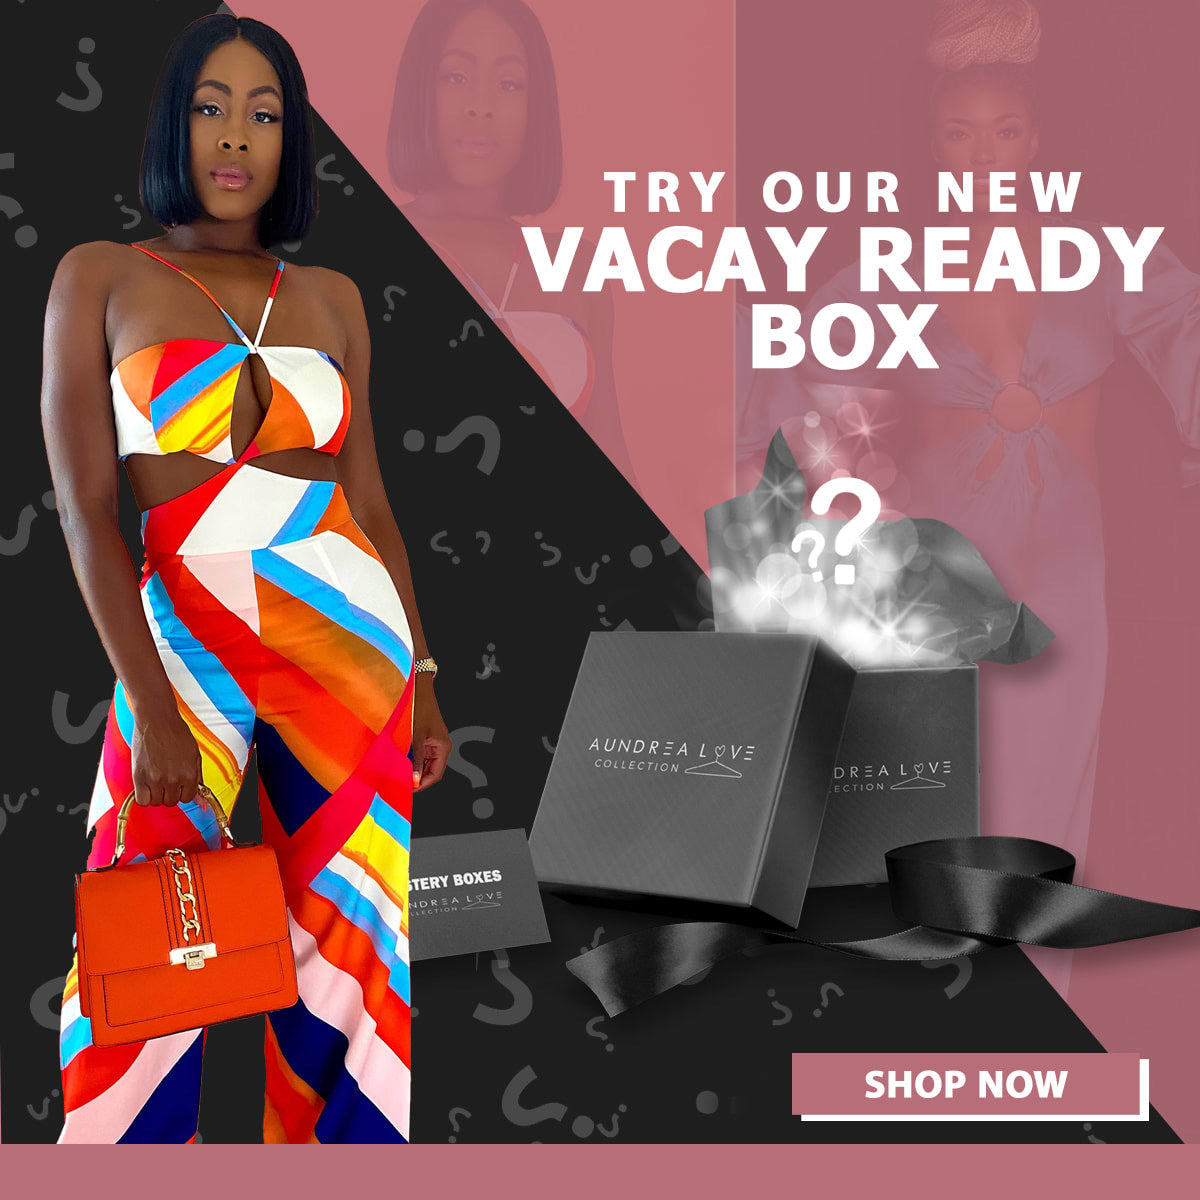 Vacay Ready Box - Aundrea Love Collection